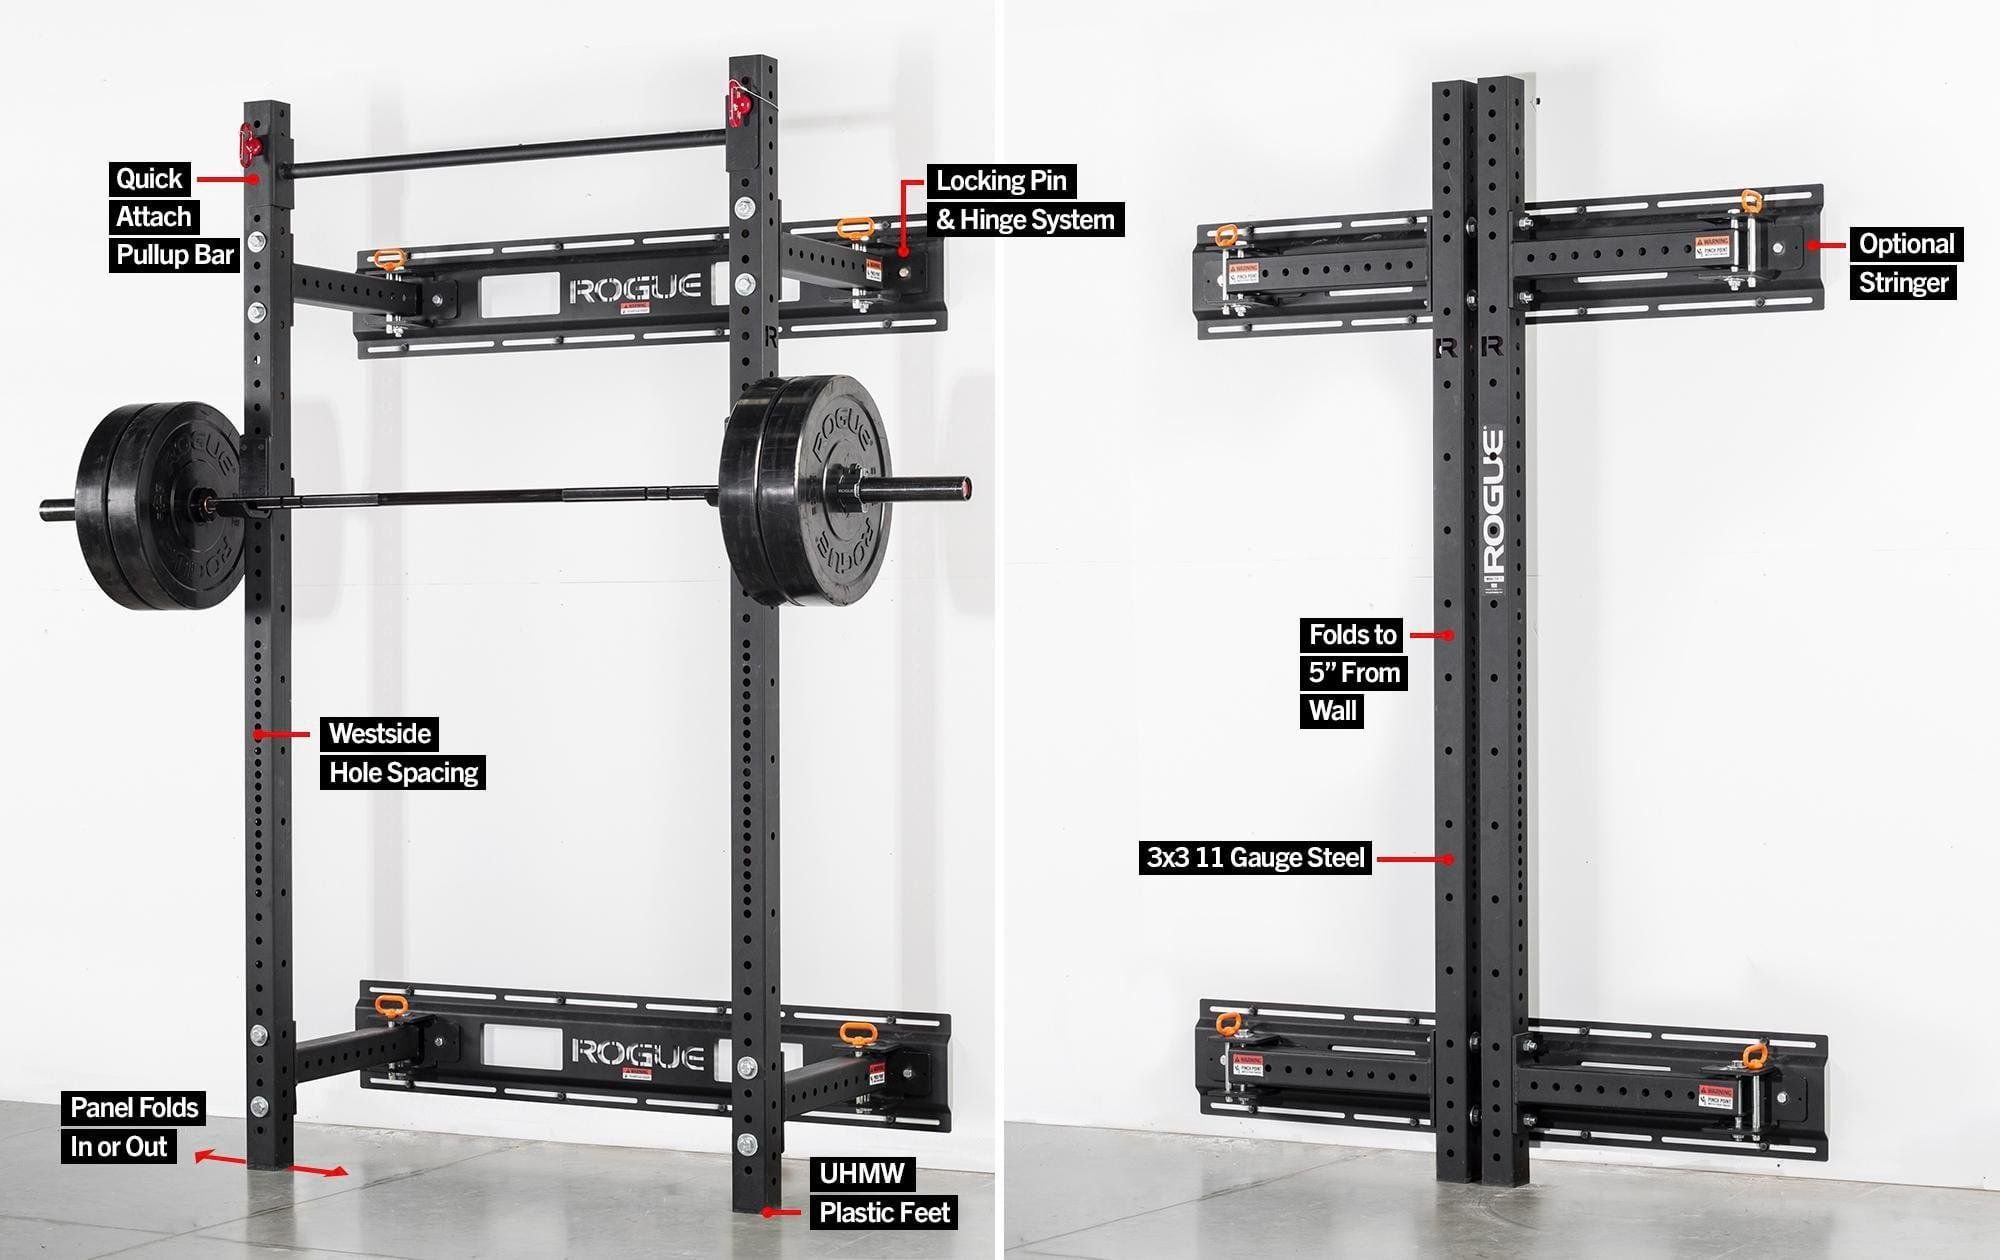 Rogue Rml 3w Fold Back Wall Mount Rack With Images Wall Mount Rack Home Gym Garage At Home Gym